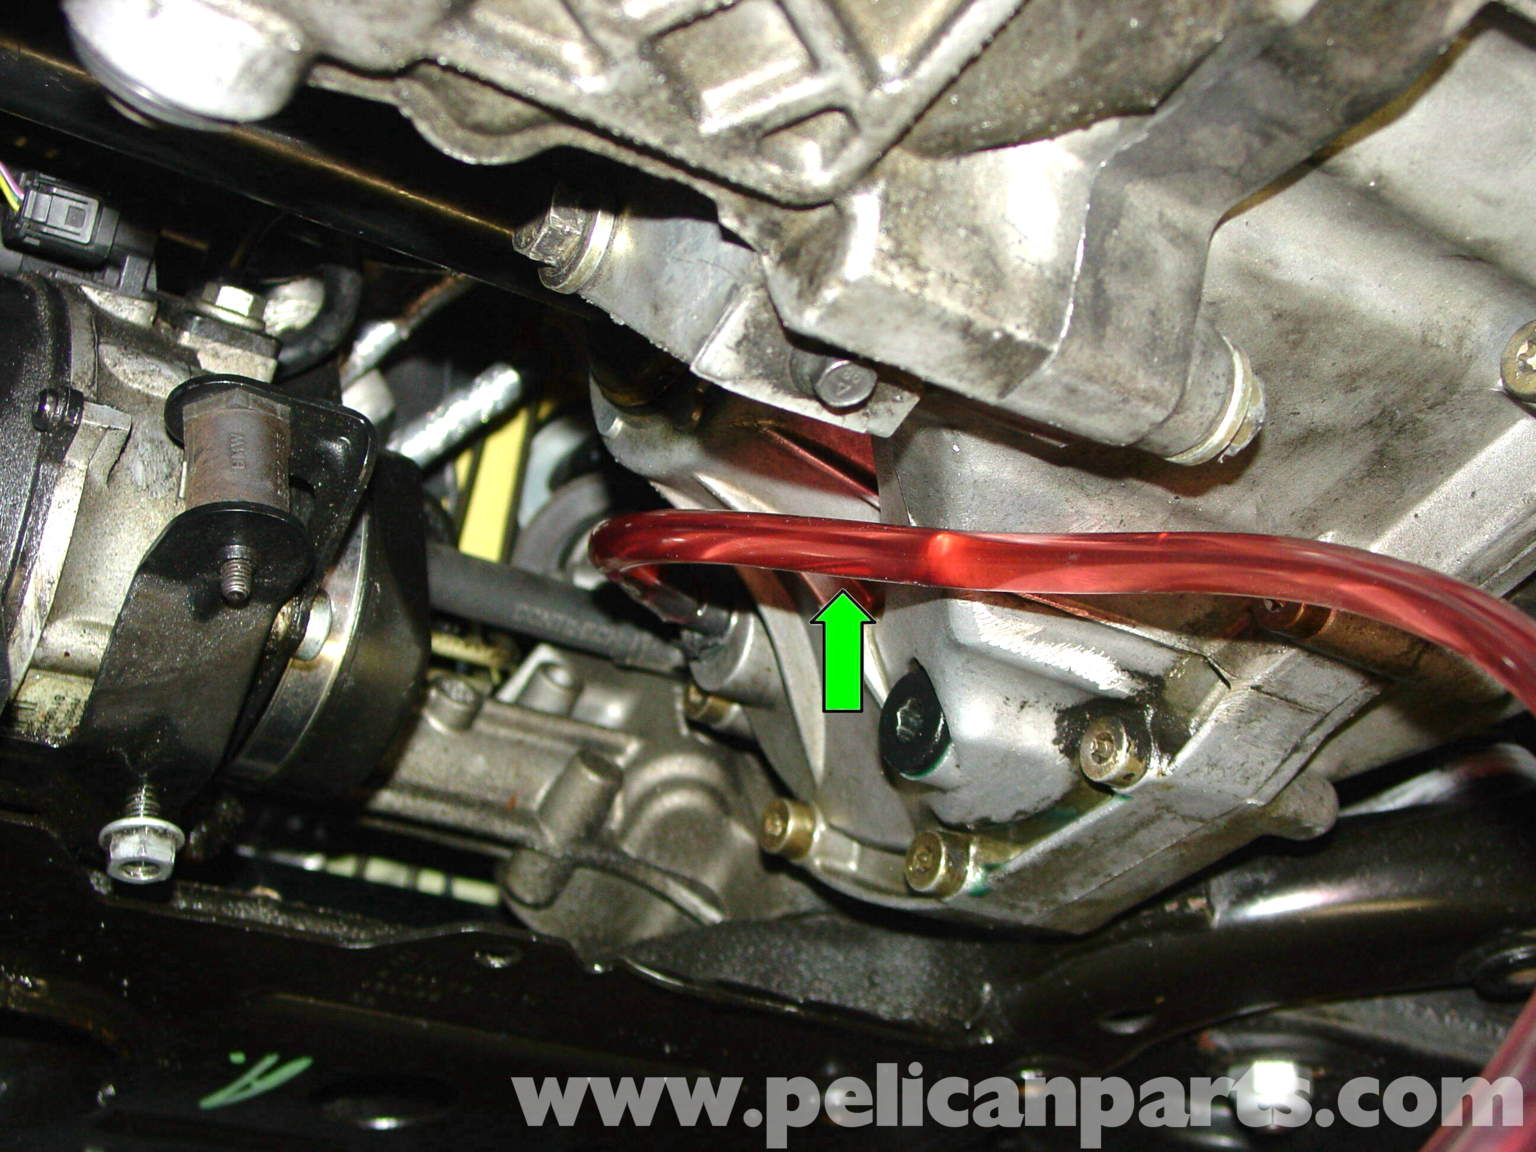 ... saab 9 3 oil pan location get free image about wiring 2008 Chevy Cobalt  Wiring-